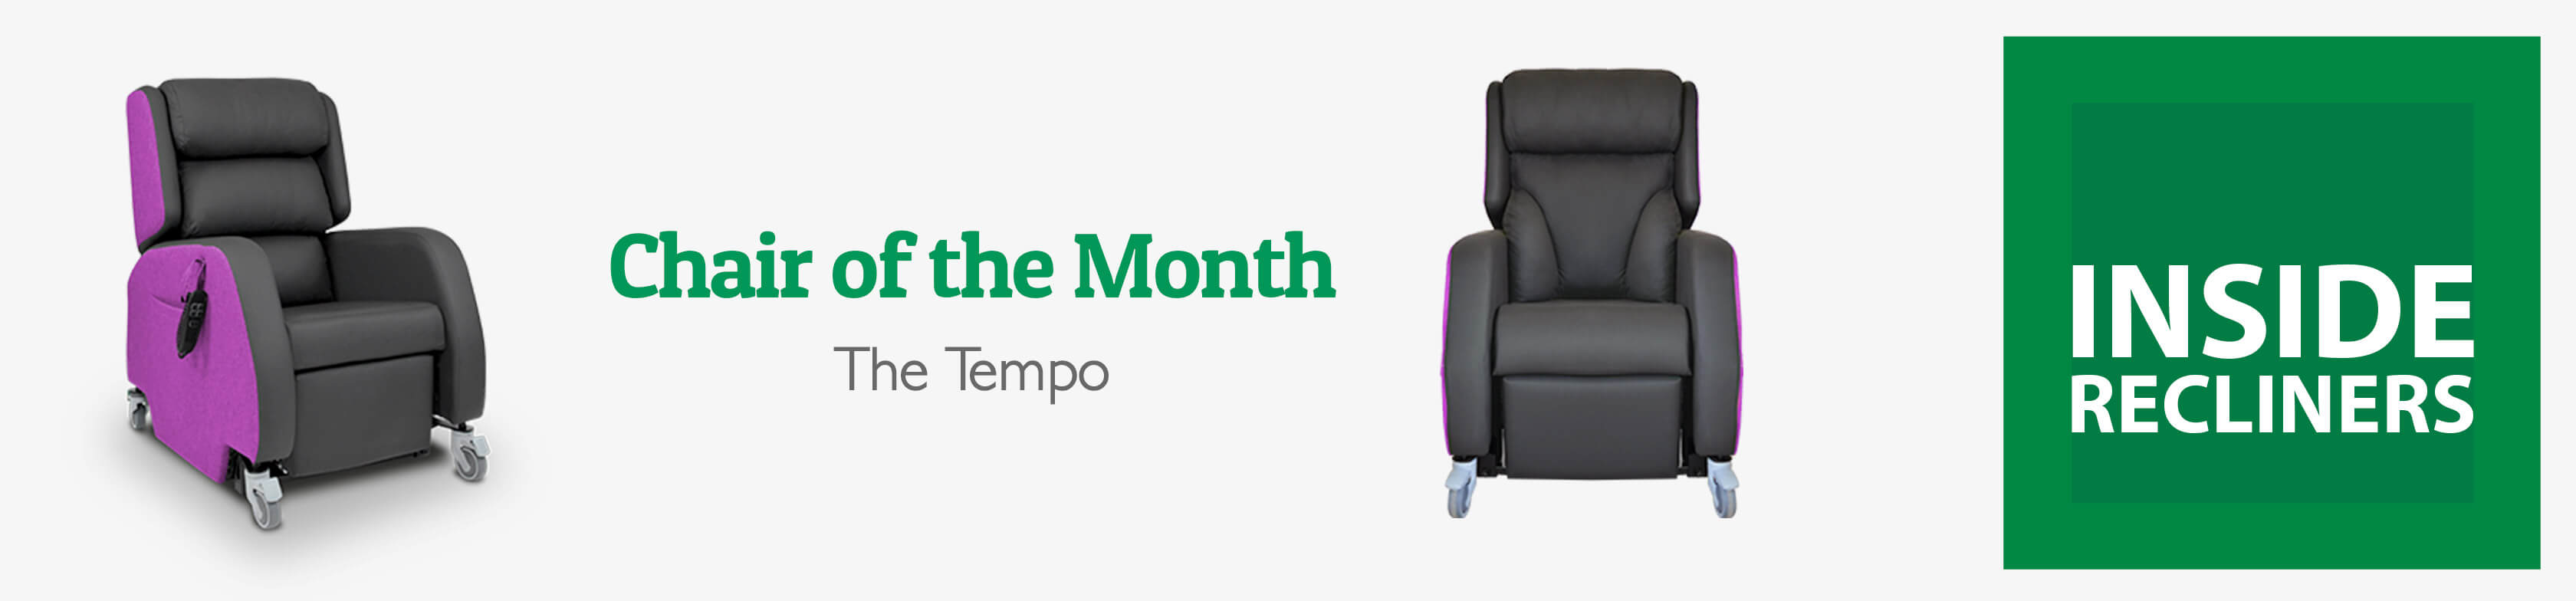 Chair of the Month – The Tempo